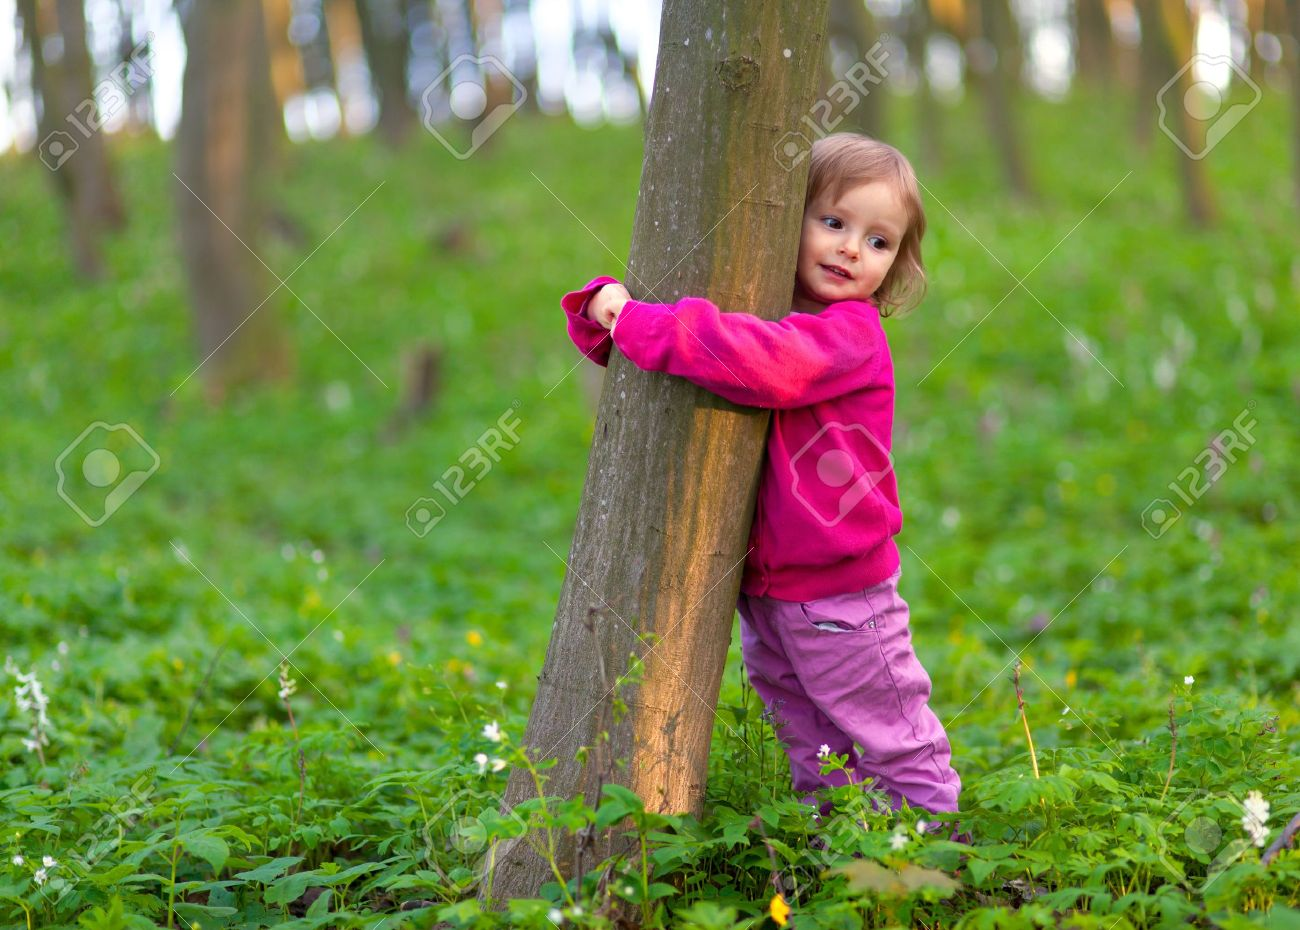 Cute little girl hugging a tree trunk in the spring forest - 16740913